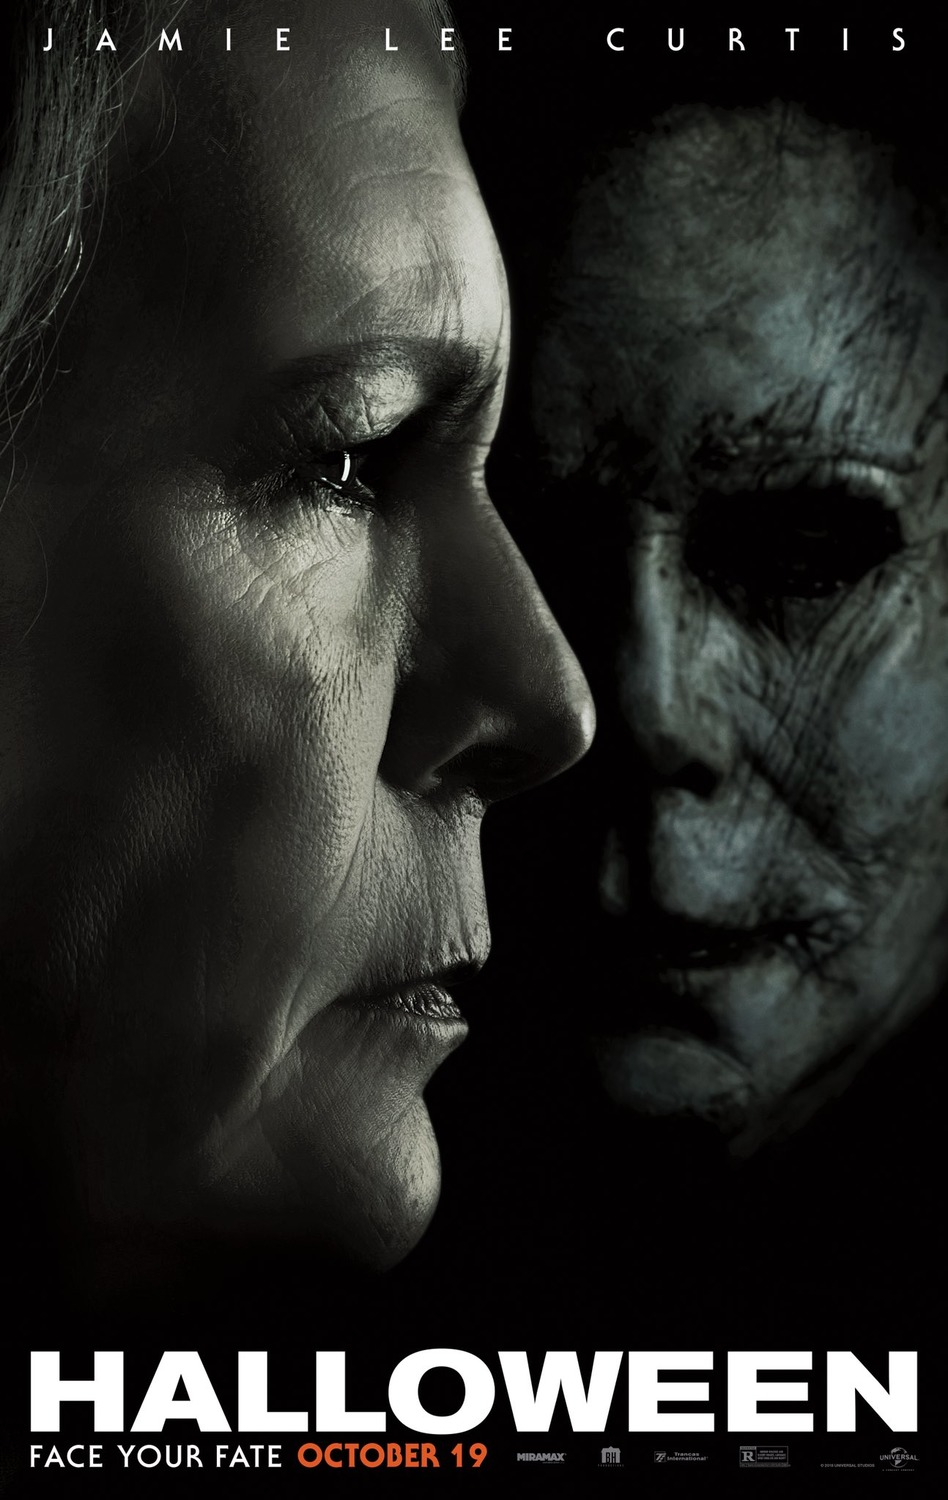 Halloween 2018 theatrical poster